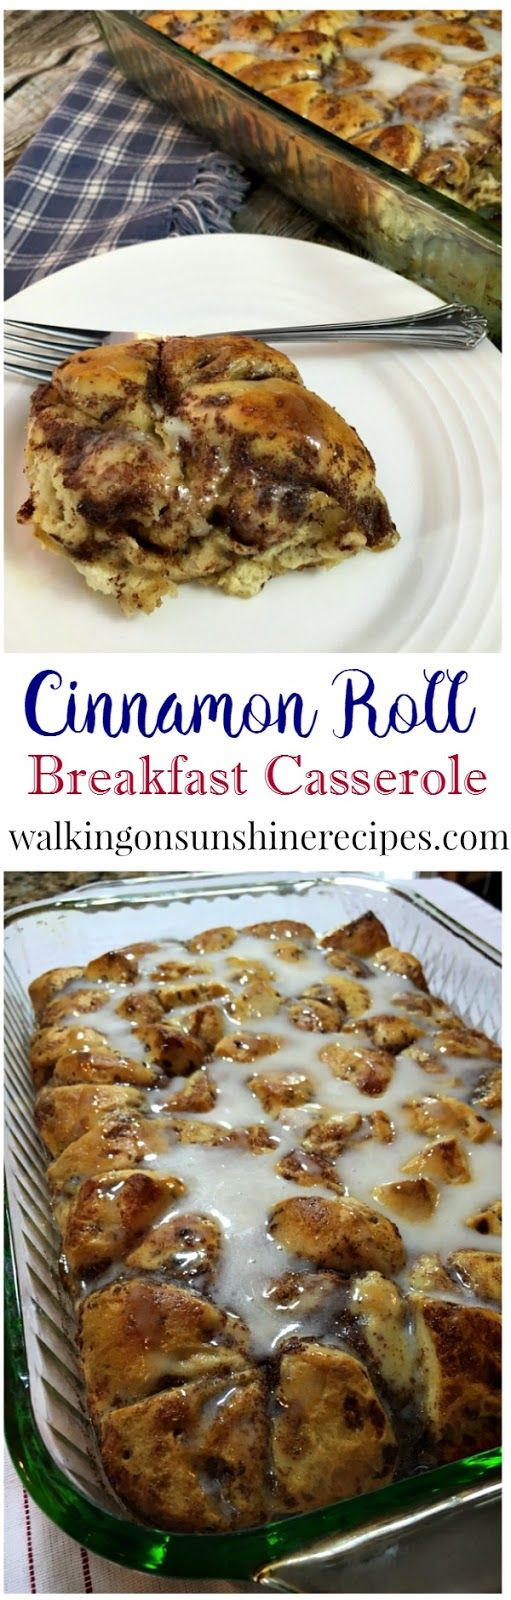 How to Make an Easy Cinnamon Roll Breakfast Casserole perfect for the weekend, special breakfast for birthdays or even holidays from Walking on Sunshine Recipes